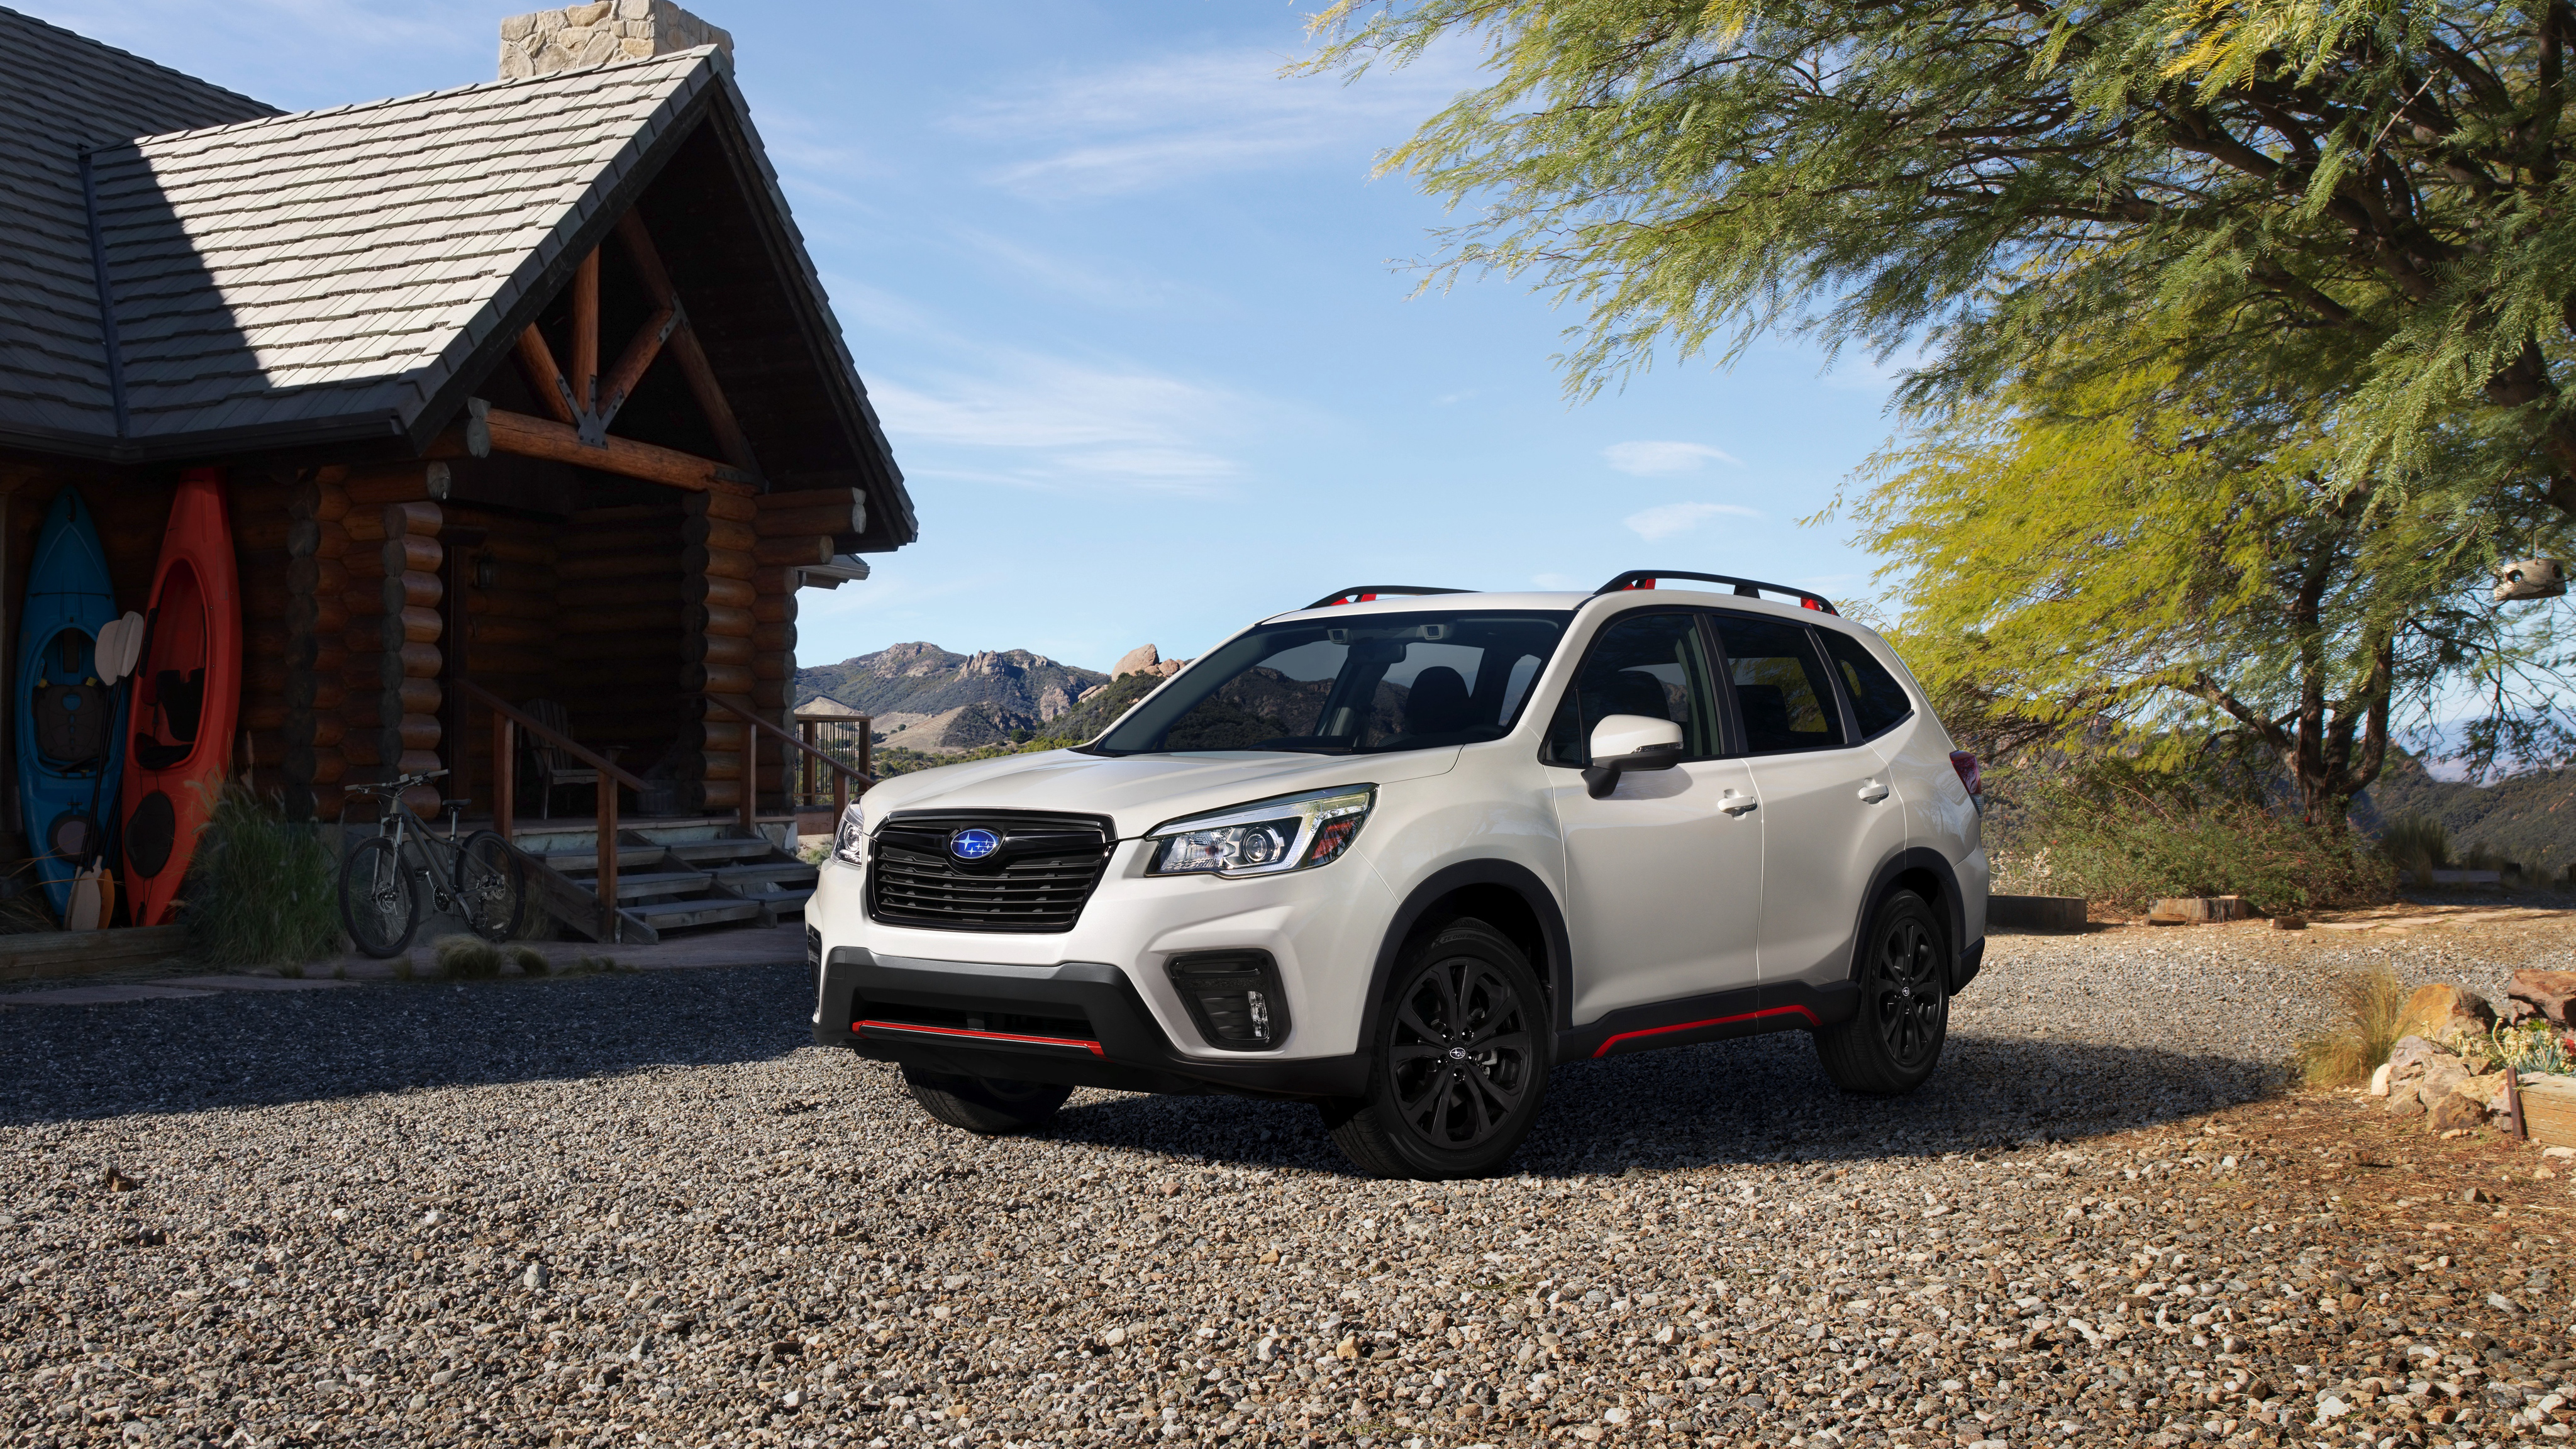 Subaru Forester Wallpaper Posted By Zoey Cunningham